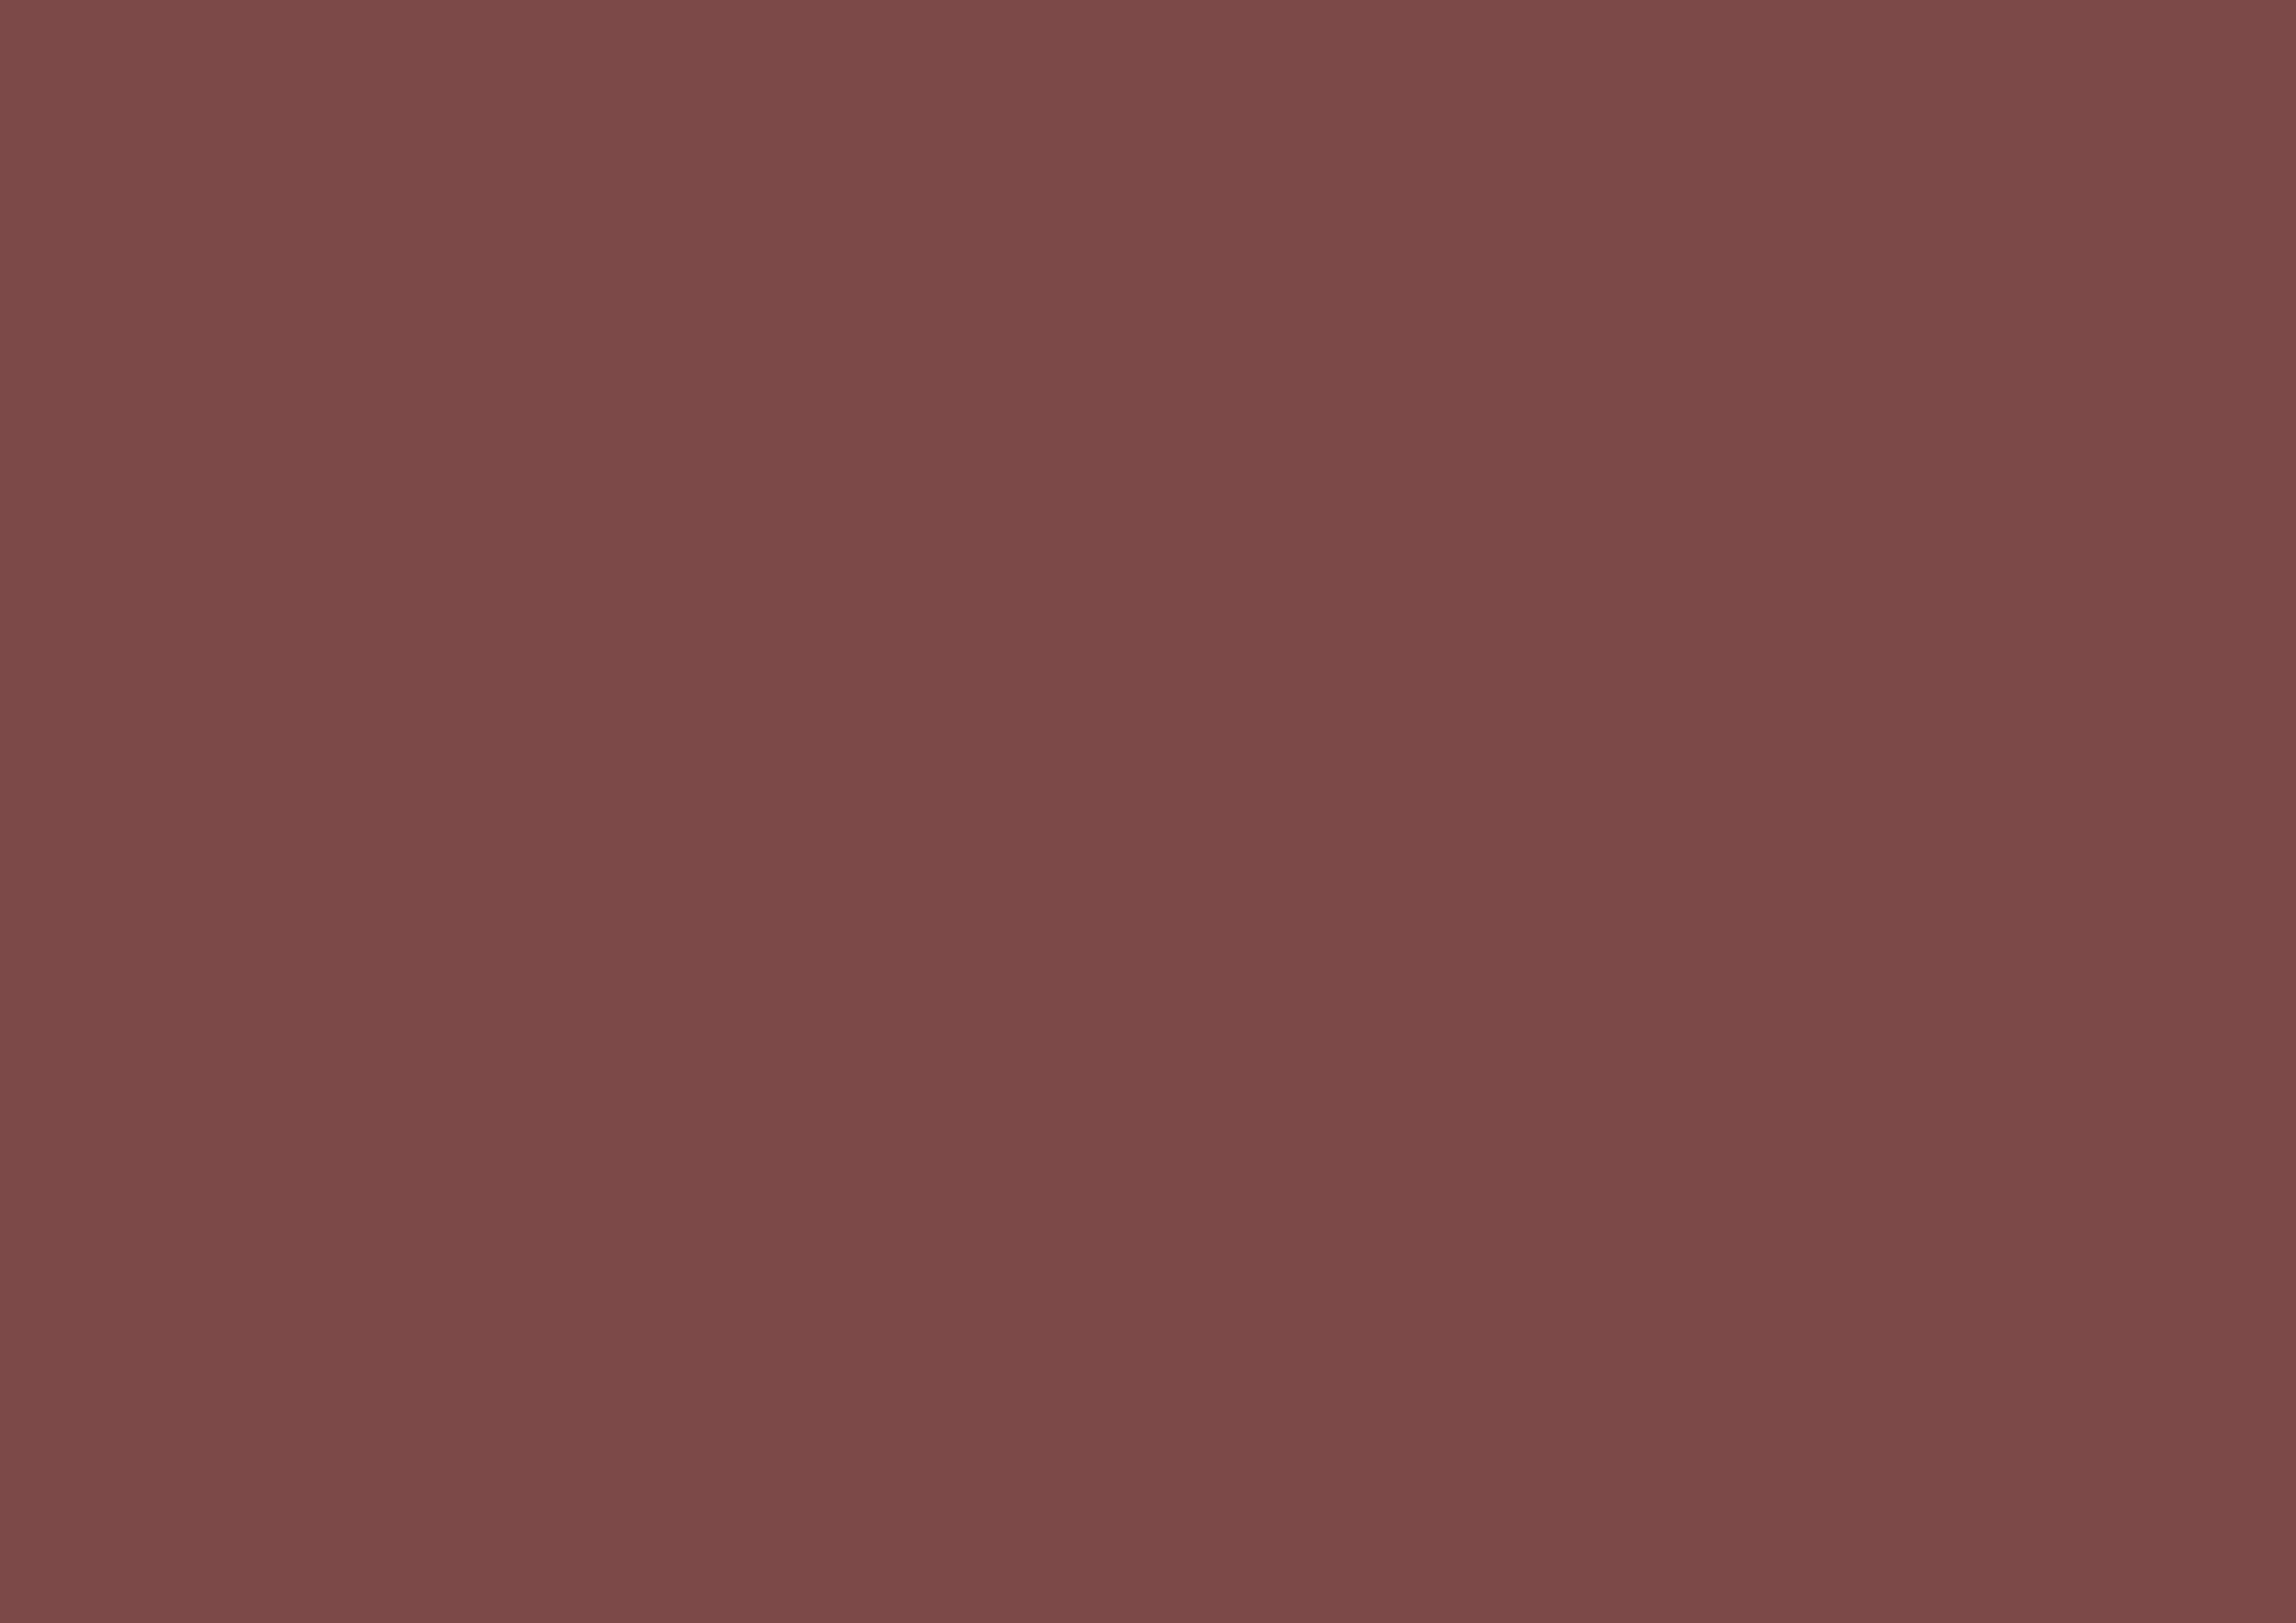 3508x2480 Tuscan Red Solid Color Background